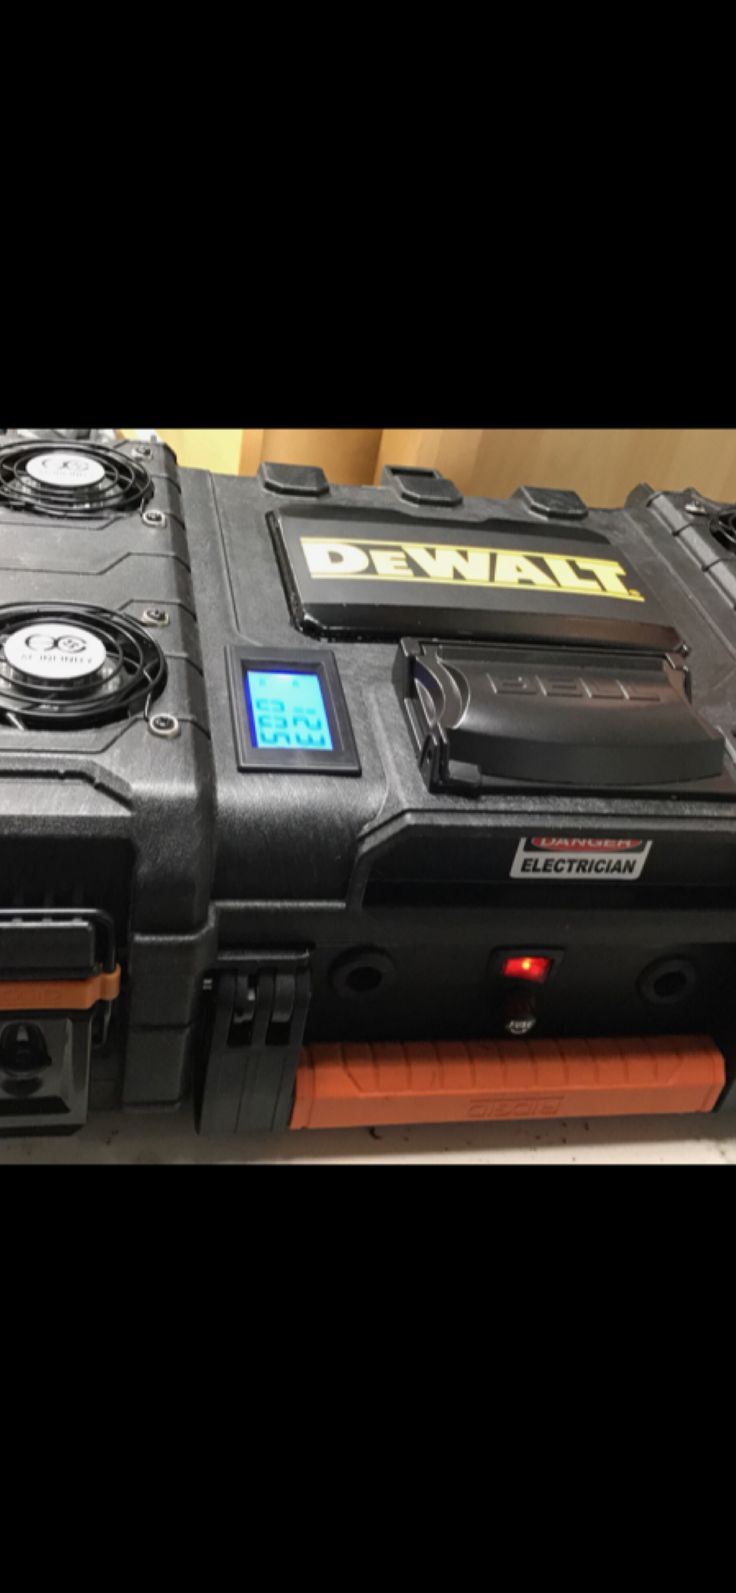 Dewalt 8 slot simultaneously battery charger with volts/amps monitor